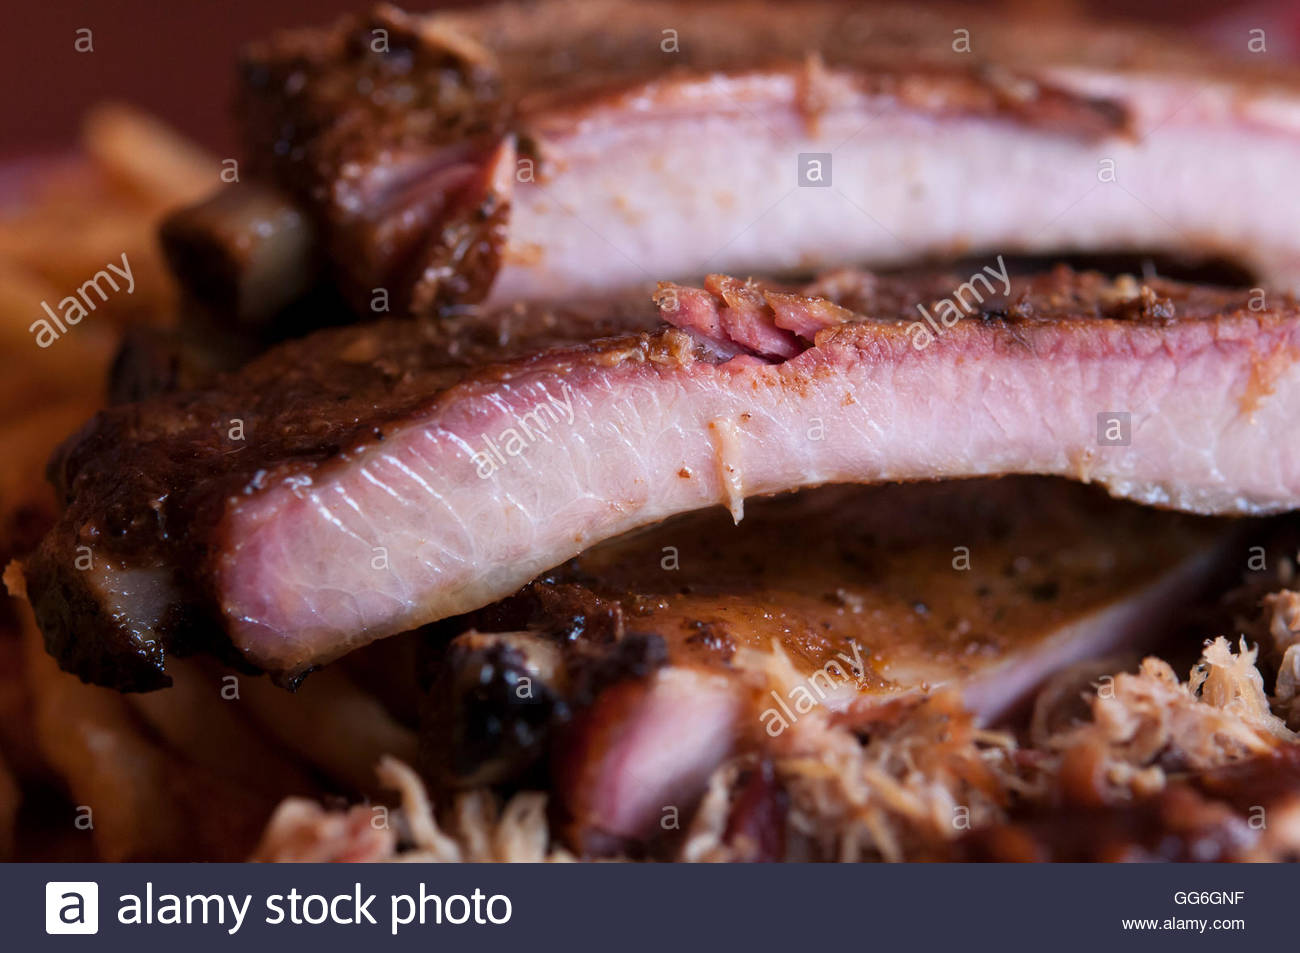 Vancouver, BC - July 2, 2011 - Scrumptious BBQ ribs. Photo: © Rod Mountain  http://bit.ly/RM-Archives  @rod - Stock Image